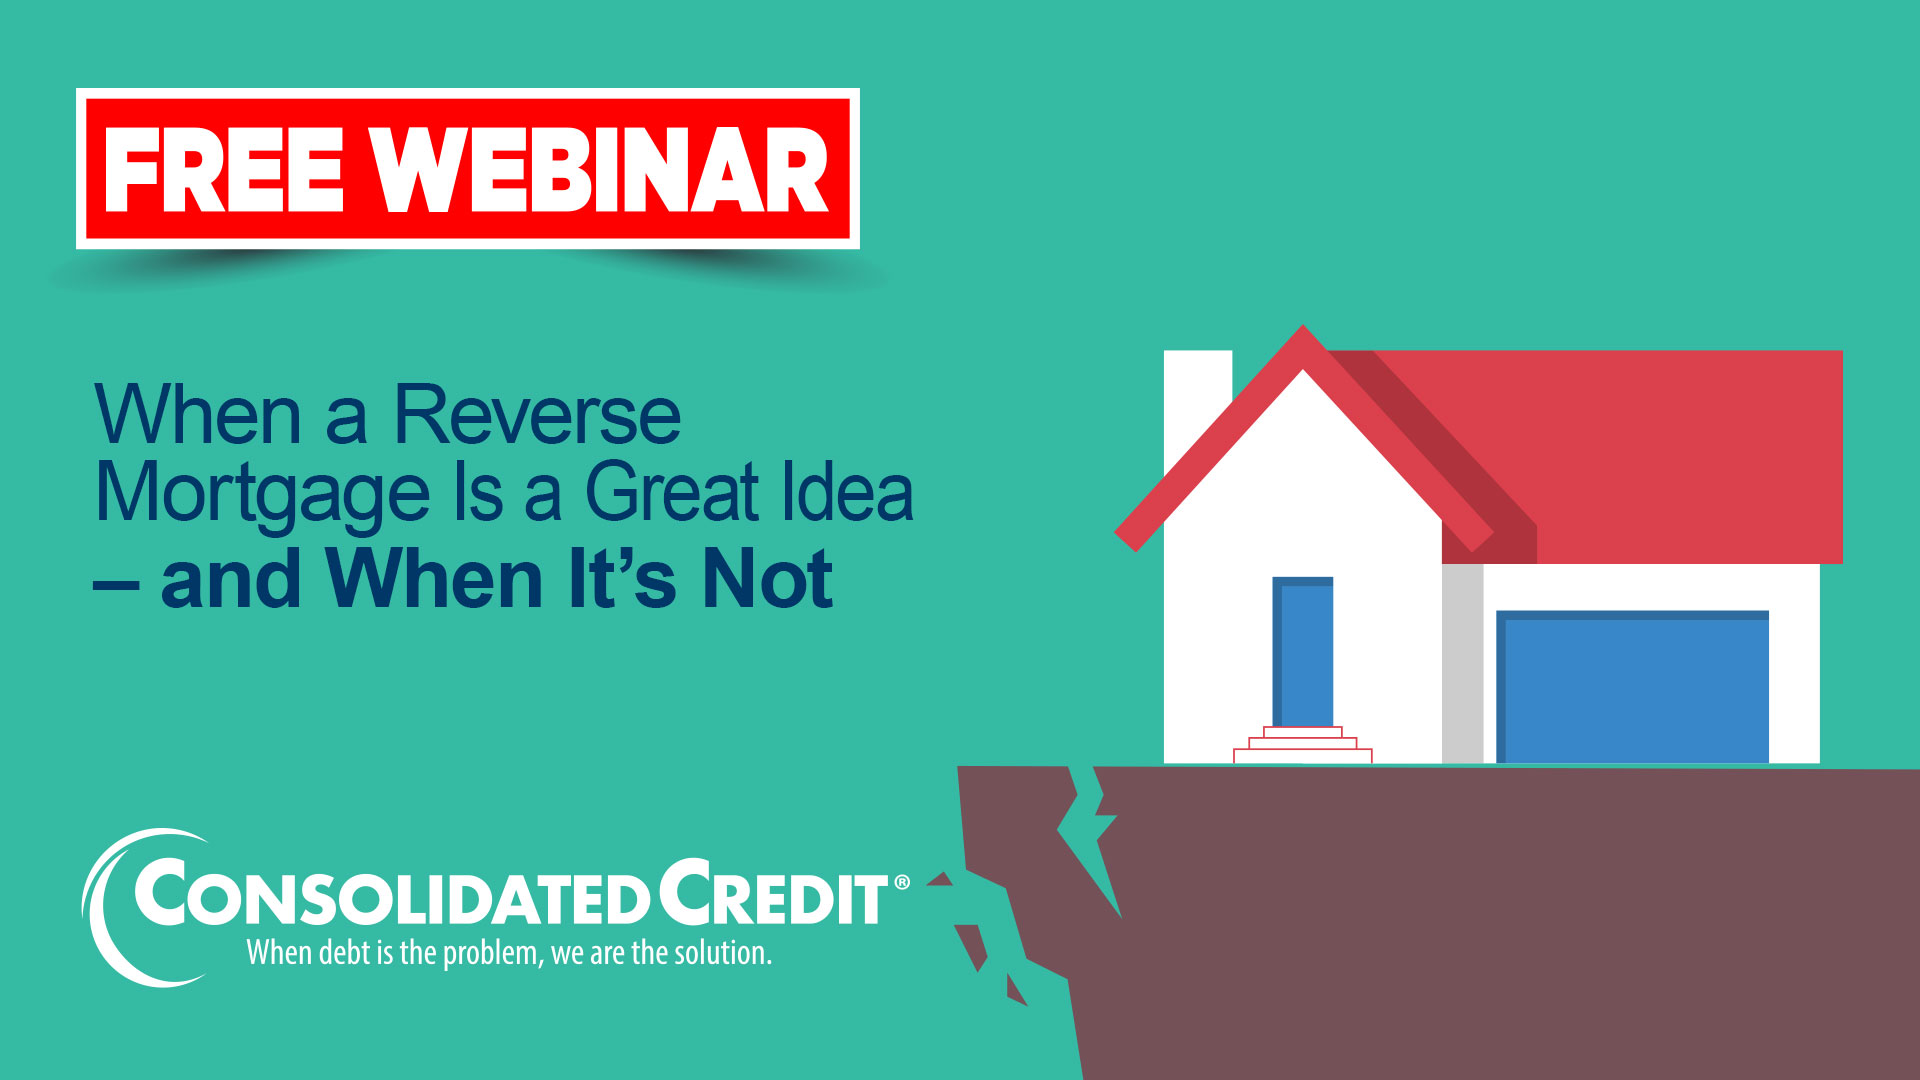 Free Webinar: When a Reverse Mortgage is a Great Idea - and When It's Not